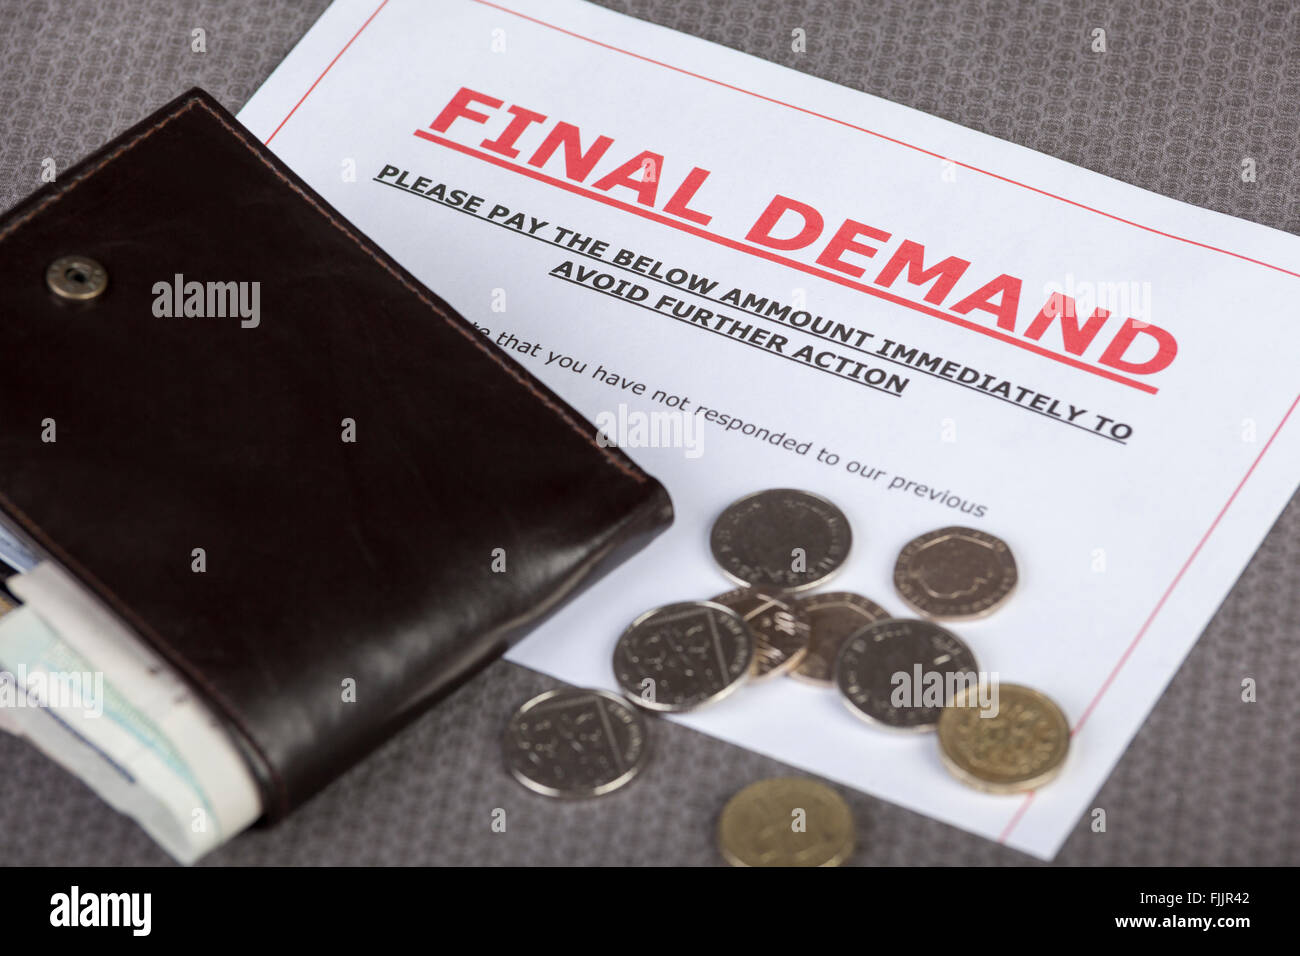 Final demand laying on a table with some loose cash and wallet - Stock Image